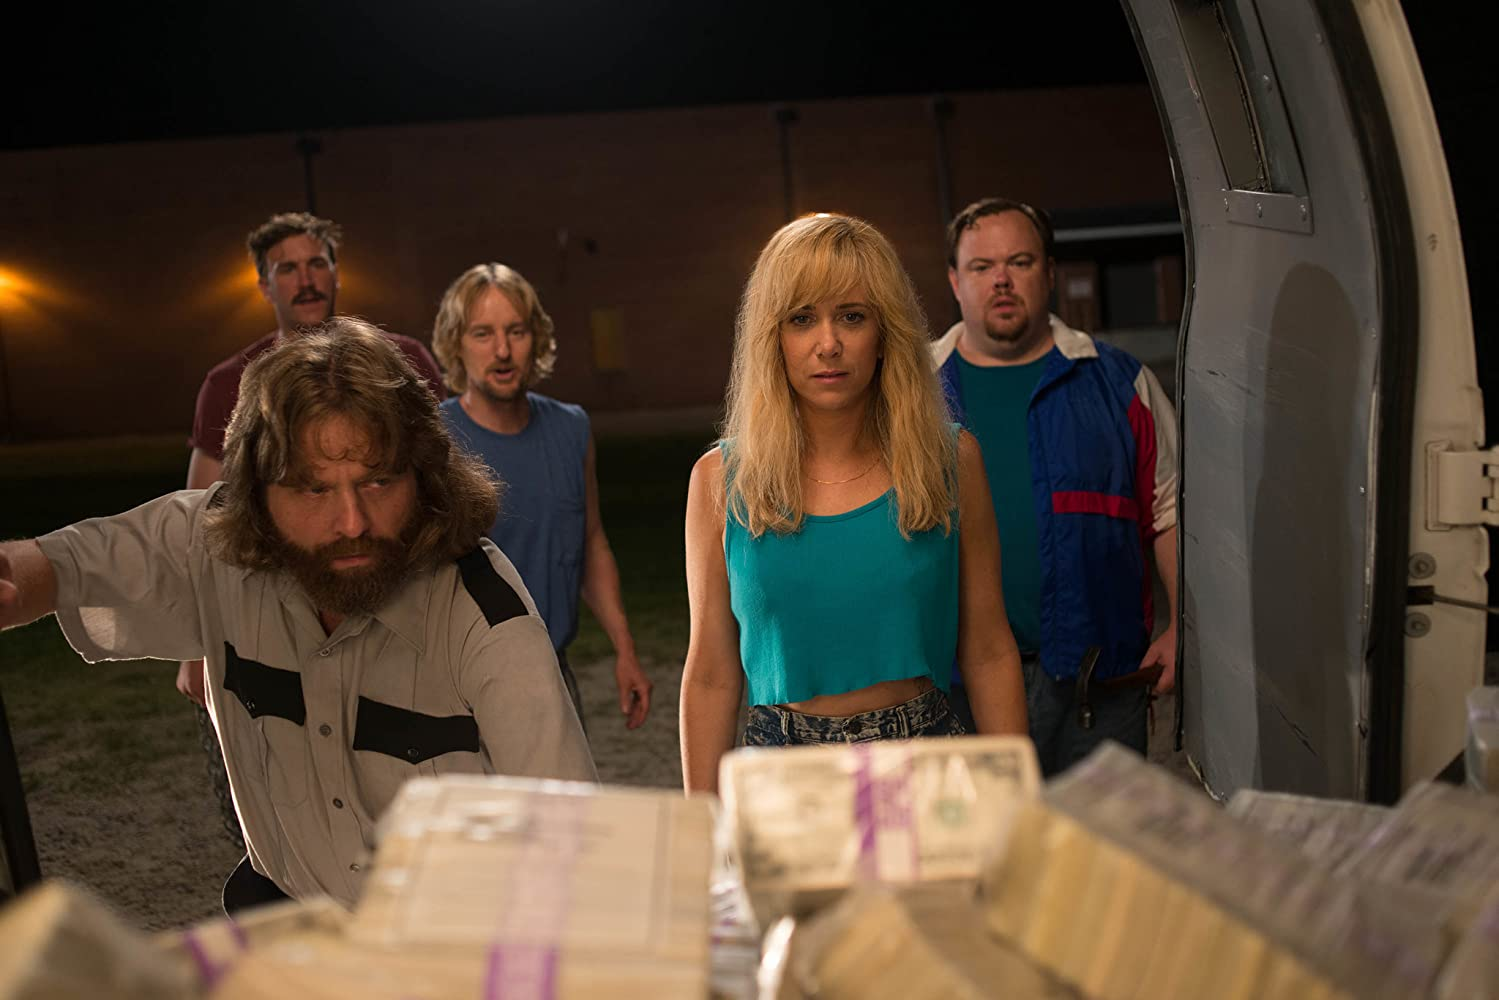 Owen Wilson, Zach Galifianakis, Devin Ratray, and Kristen Wiig in Masterminds (2016)